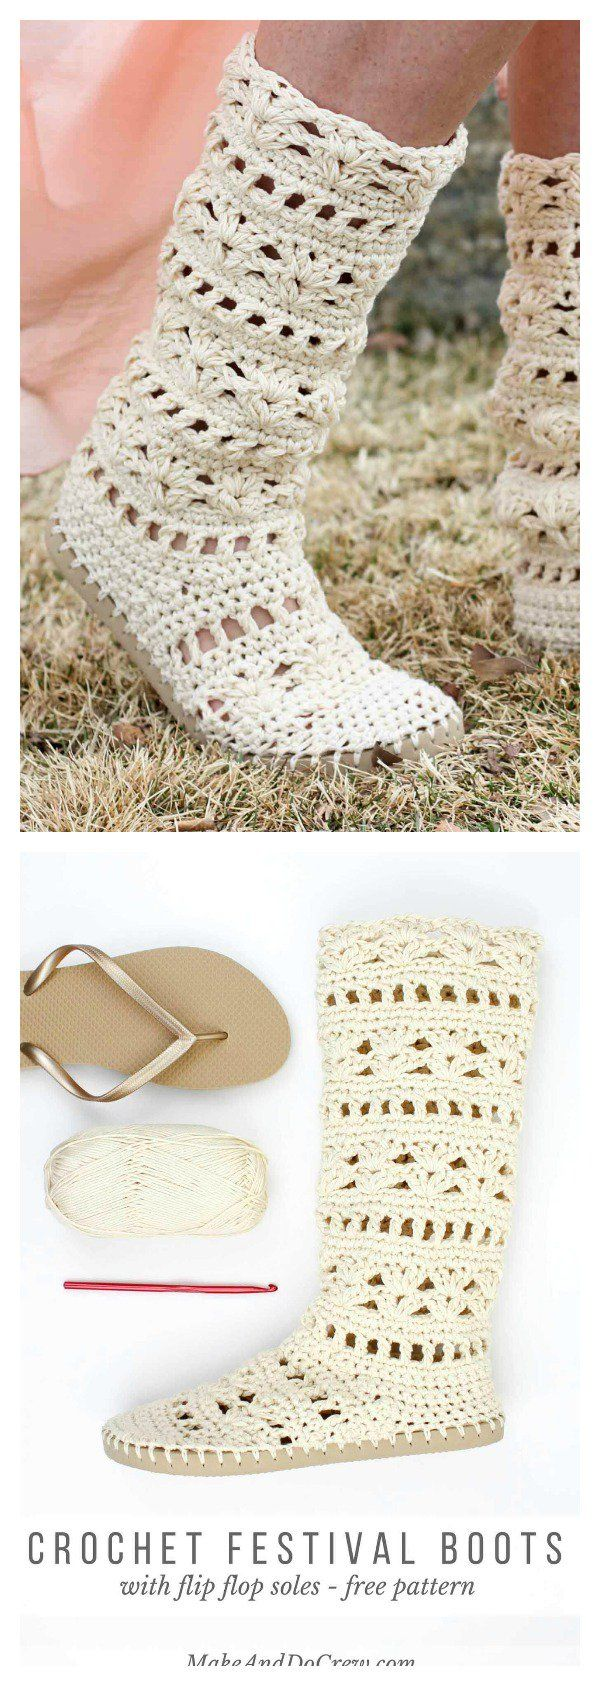 How to Crochet Slippers with Flip Flop Soles | Zapatillas, Ganchillo ...